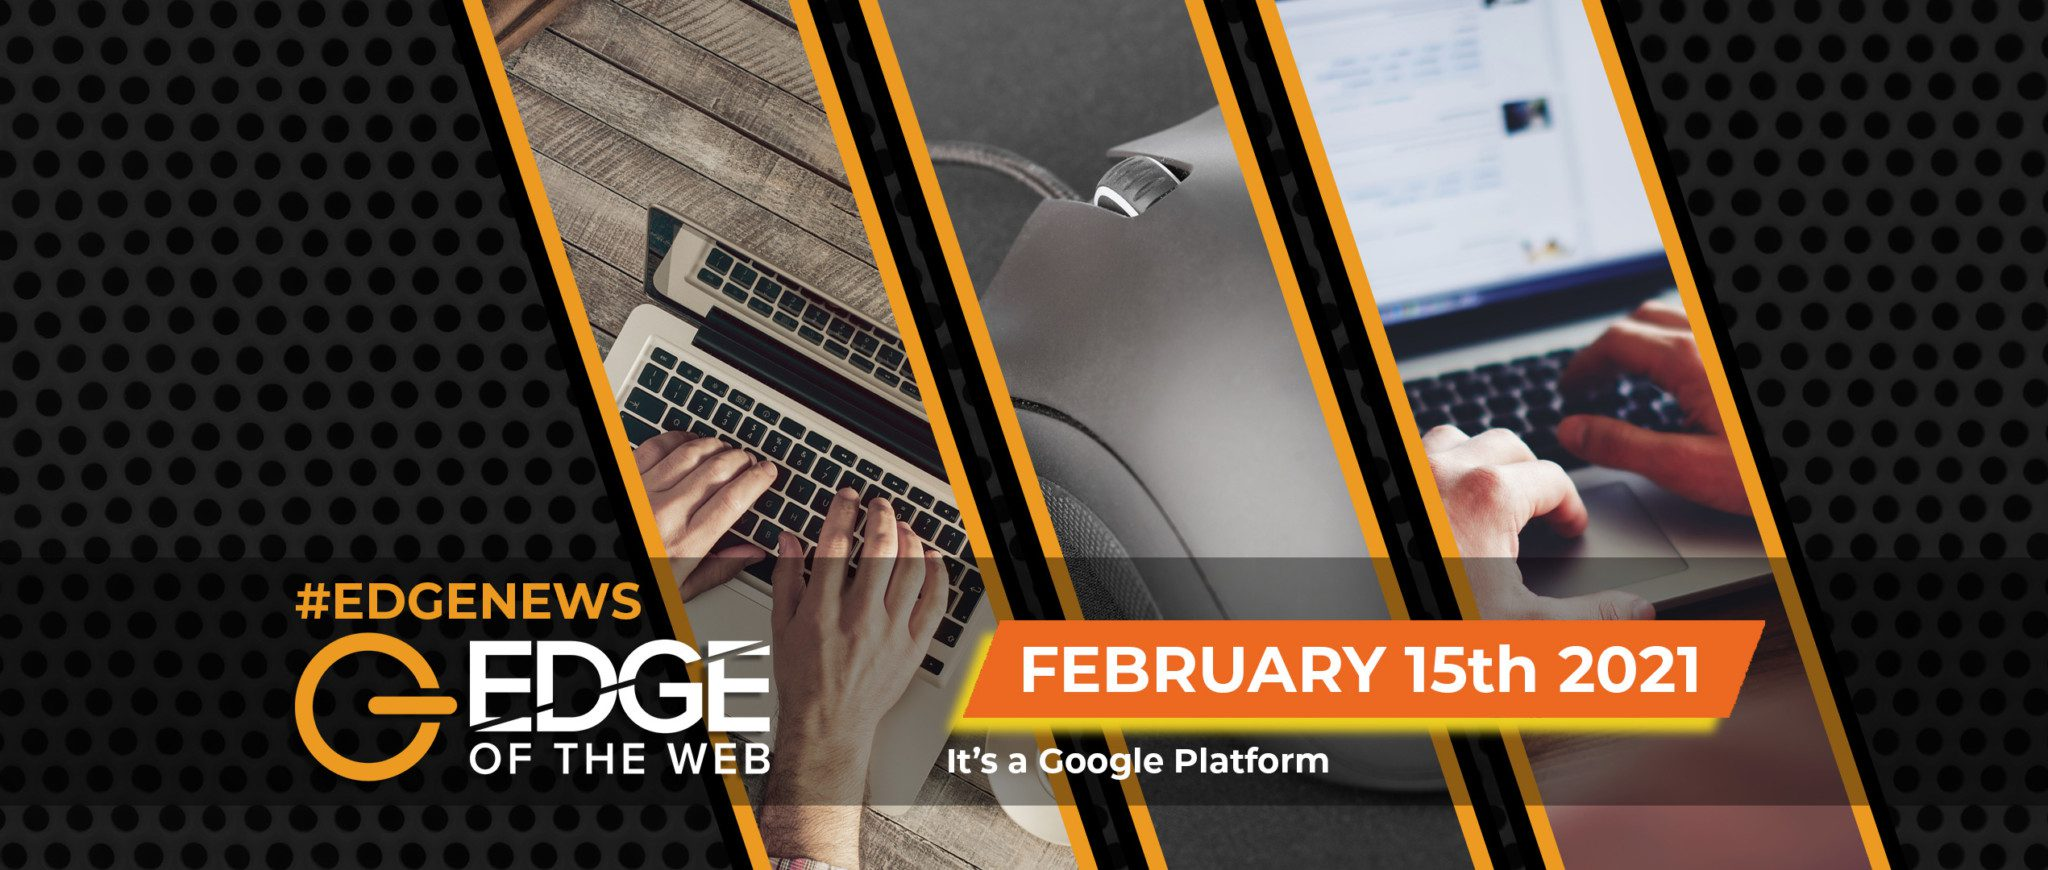 394 | News from the EDGE: Week of February 15, 2021